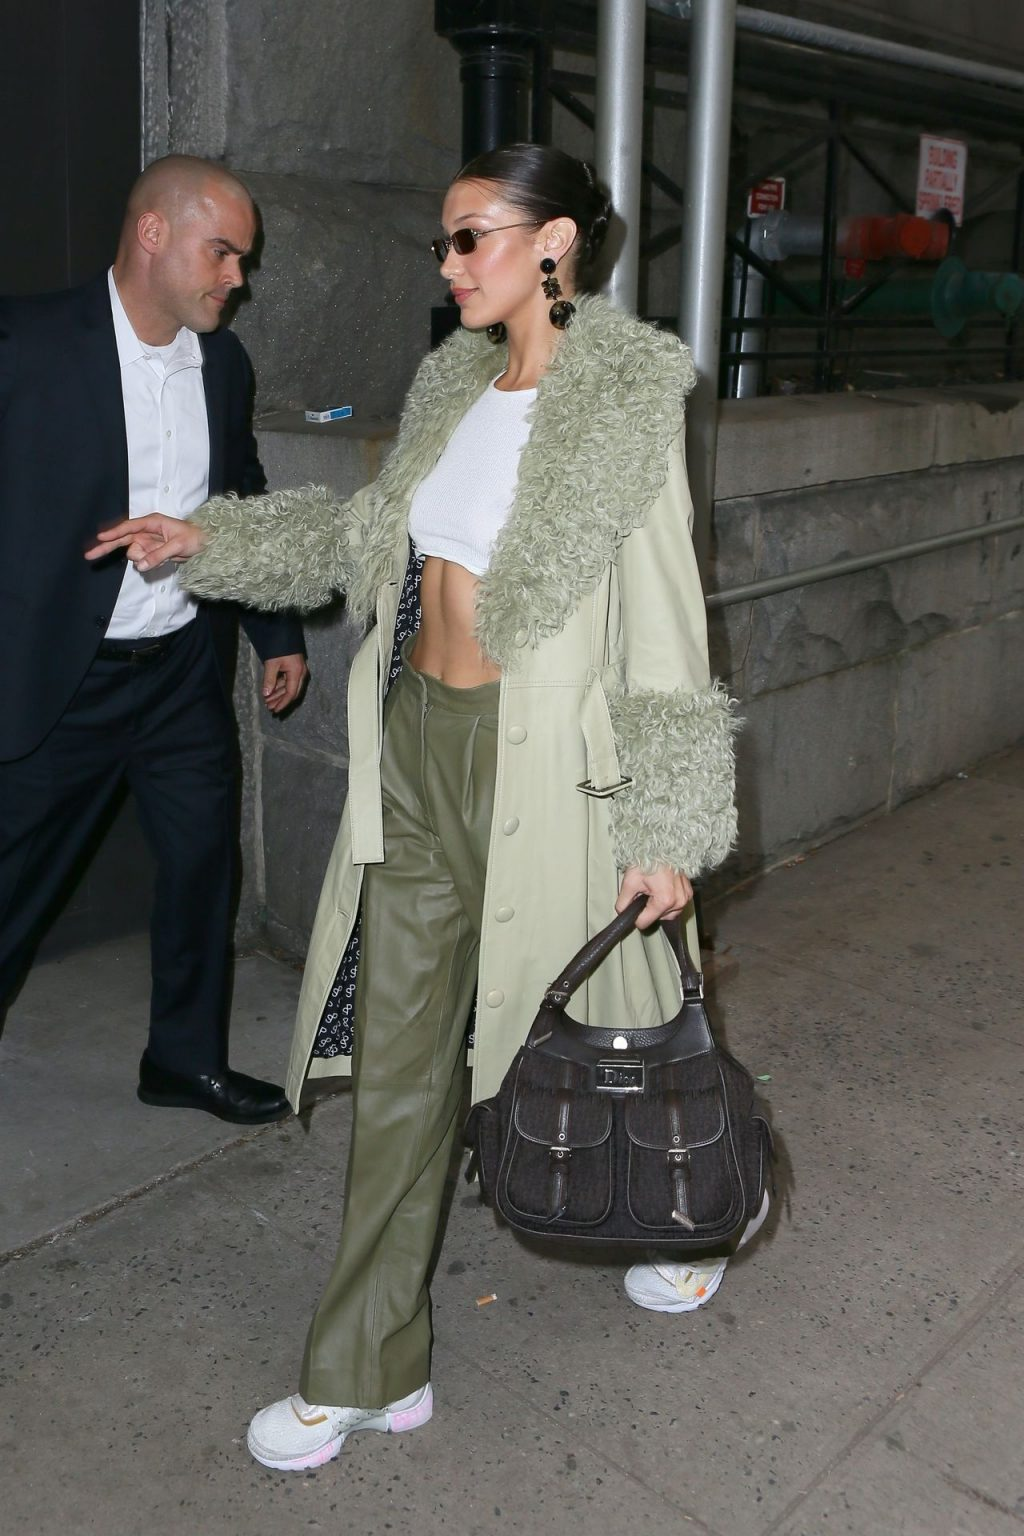 Bella Hadid See through The Fappening Blog 16 1024x1536 - Braless Bella Hadid Arrives at the Park Avenue Armory for the Marc Jacobs Fashion Show (59 Photos)